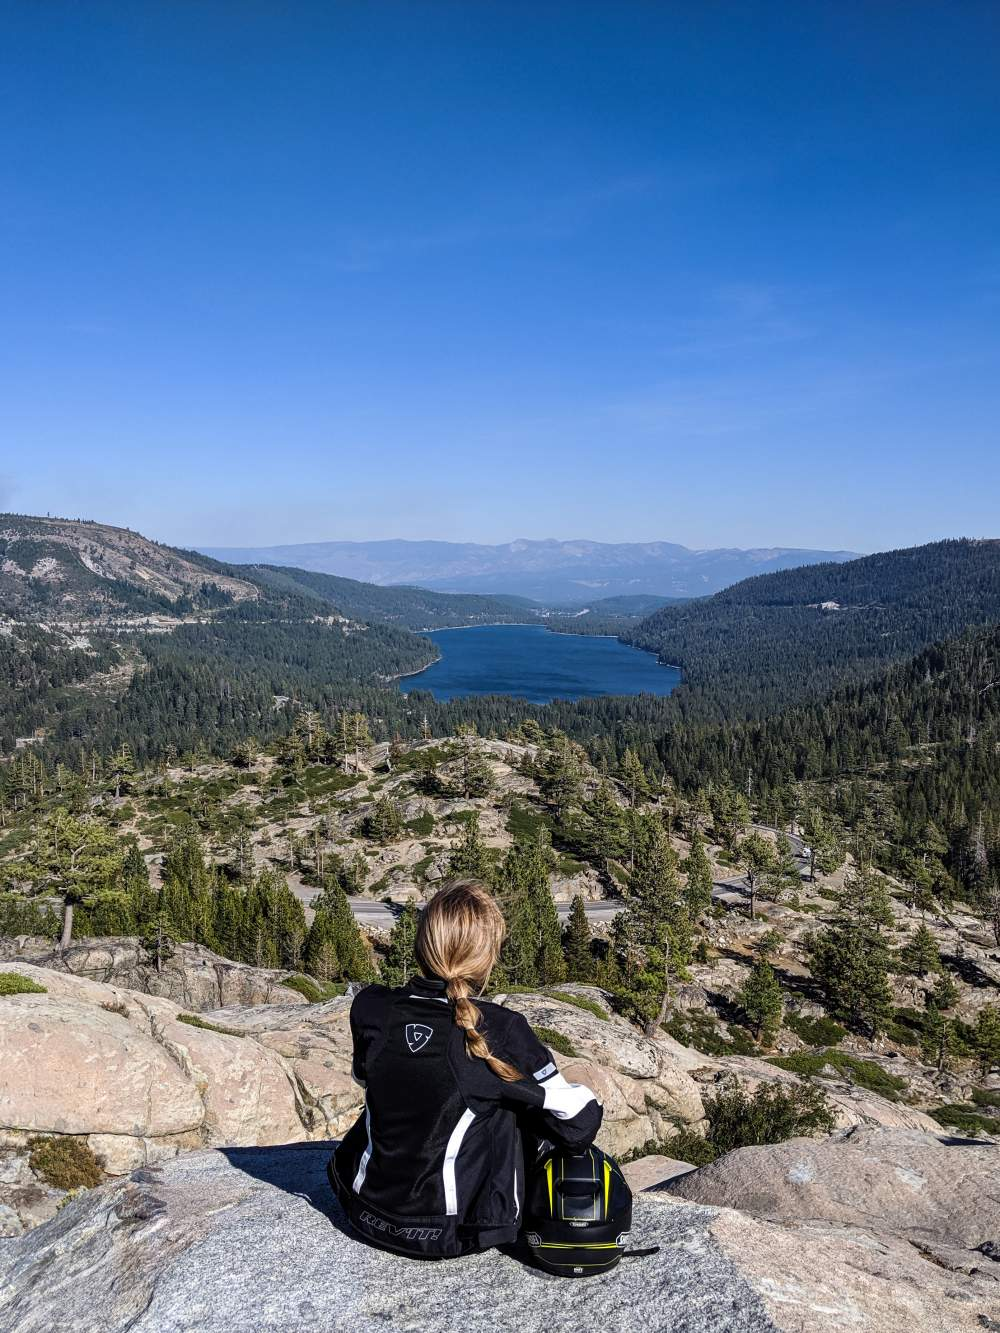 6-Day 'Tahoe & Yosemite' Alpine Tour